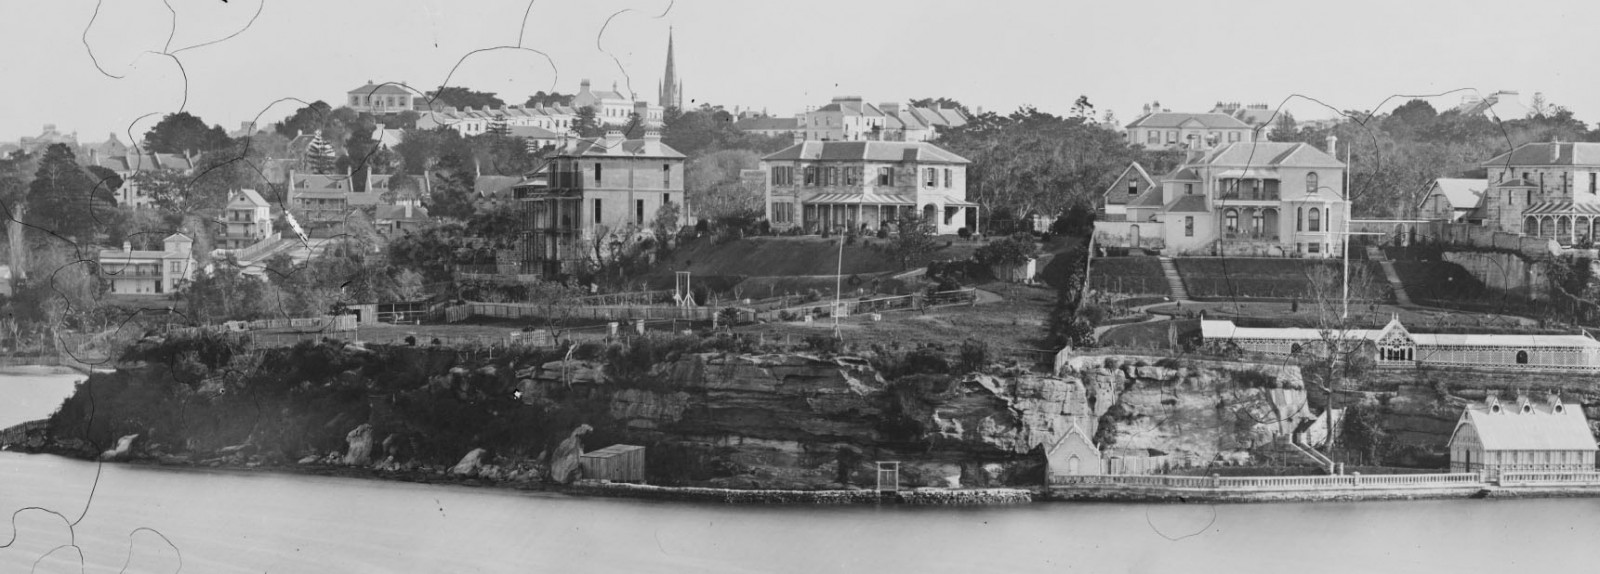 The grand Kincoppal residence (left) in 1875